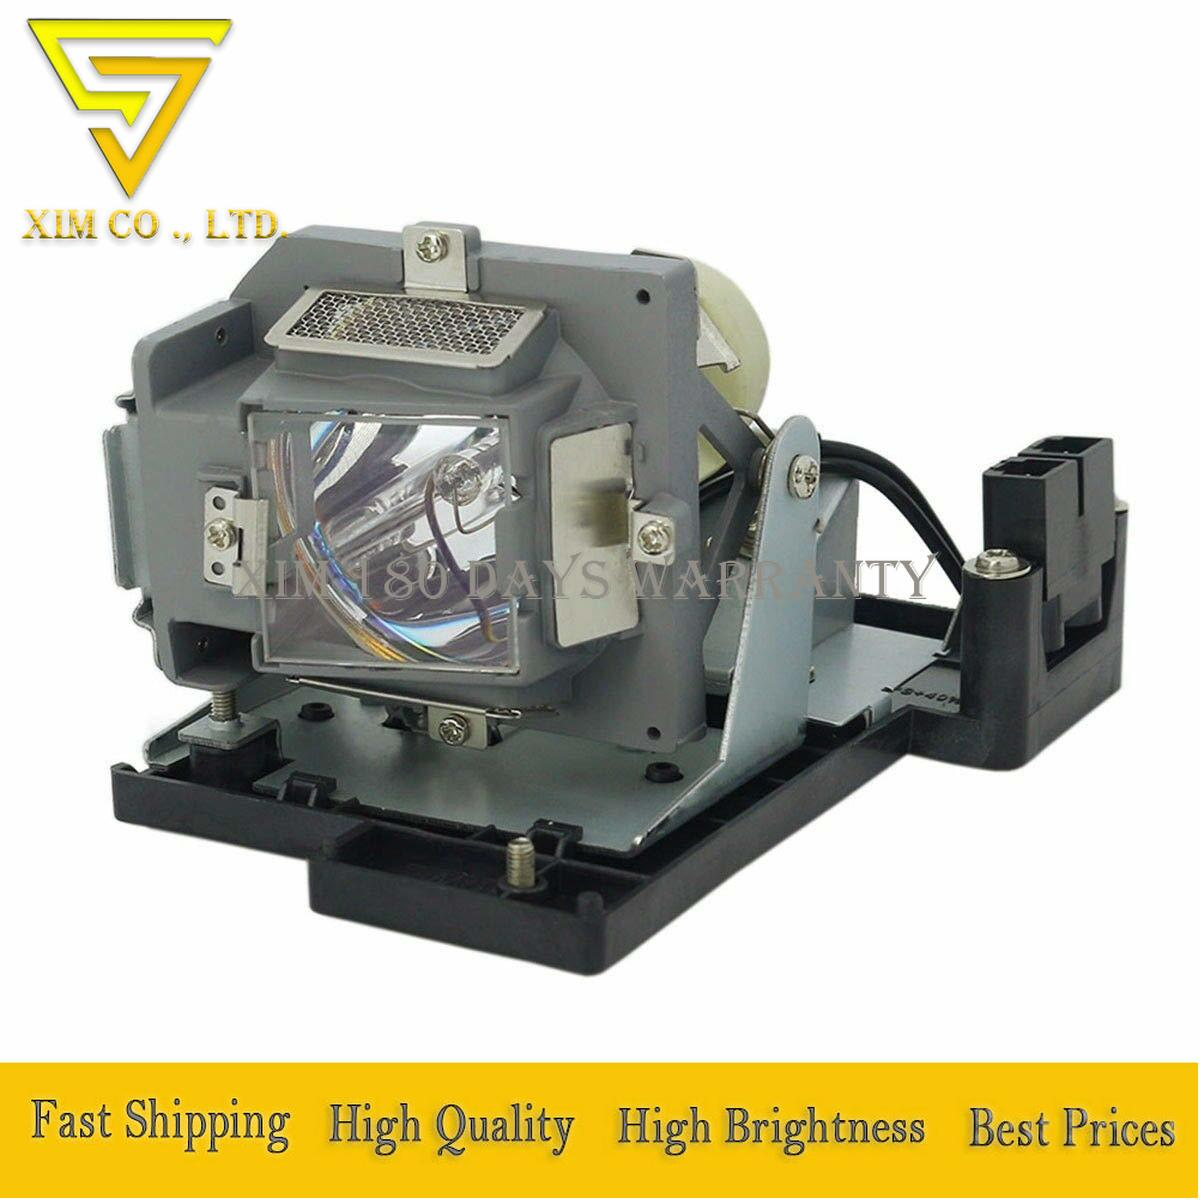 5J.J0705.001 high quality Projector Lamp Bulb with housing Replacement for BENQ HP3325 MP670 W600 W600+ projectors ec jbu00 001 replacement projector bare bulb with housing for acer x110p x1161p x1261p h110p x1161pa x1161n projectors